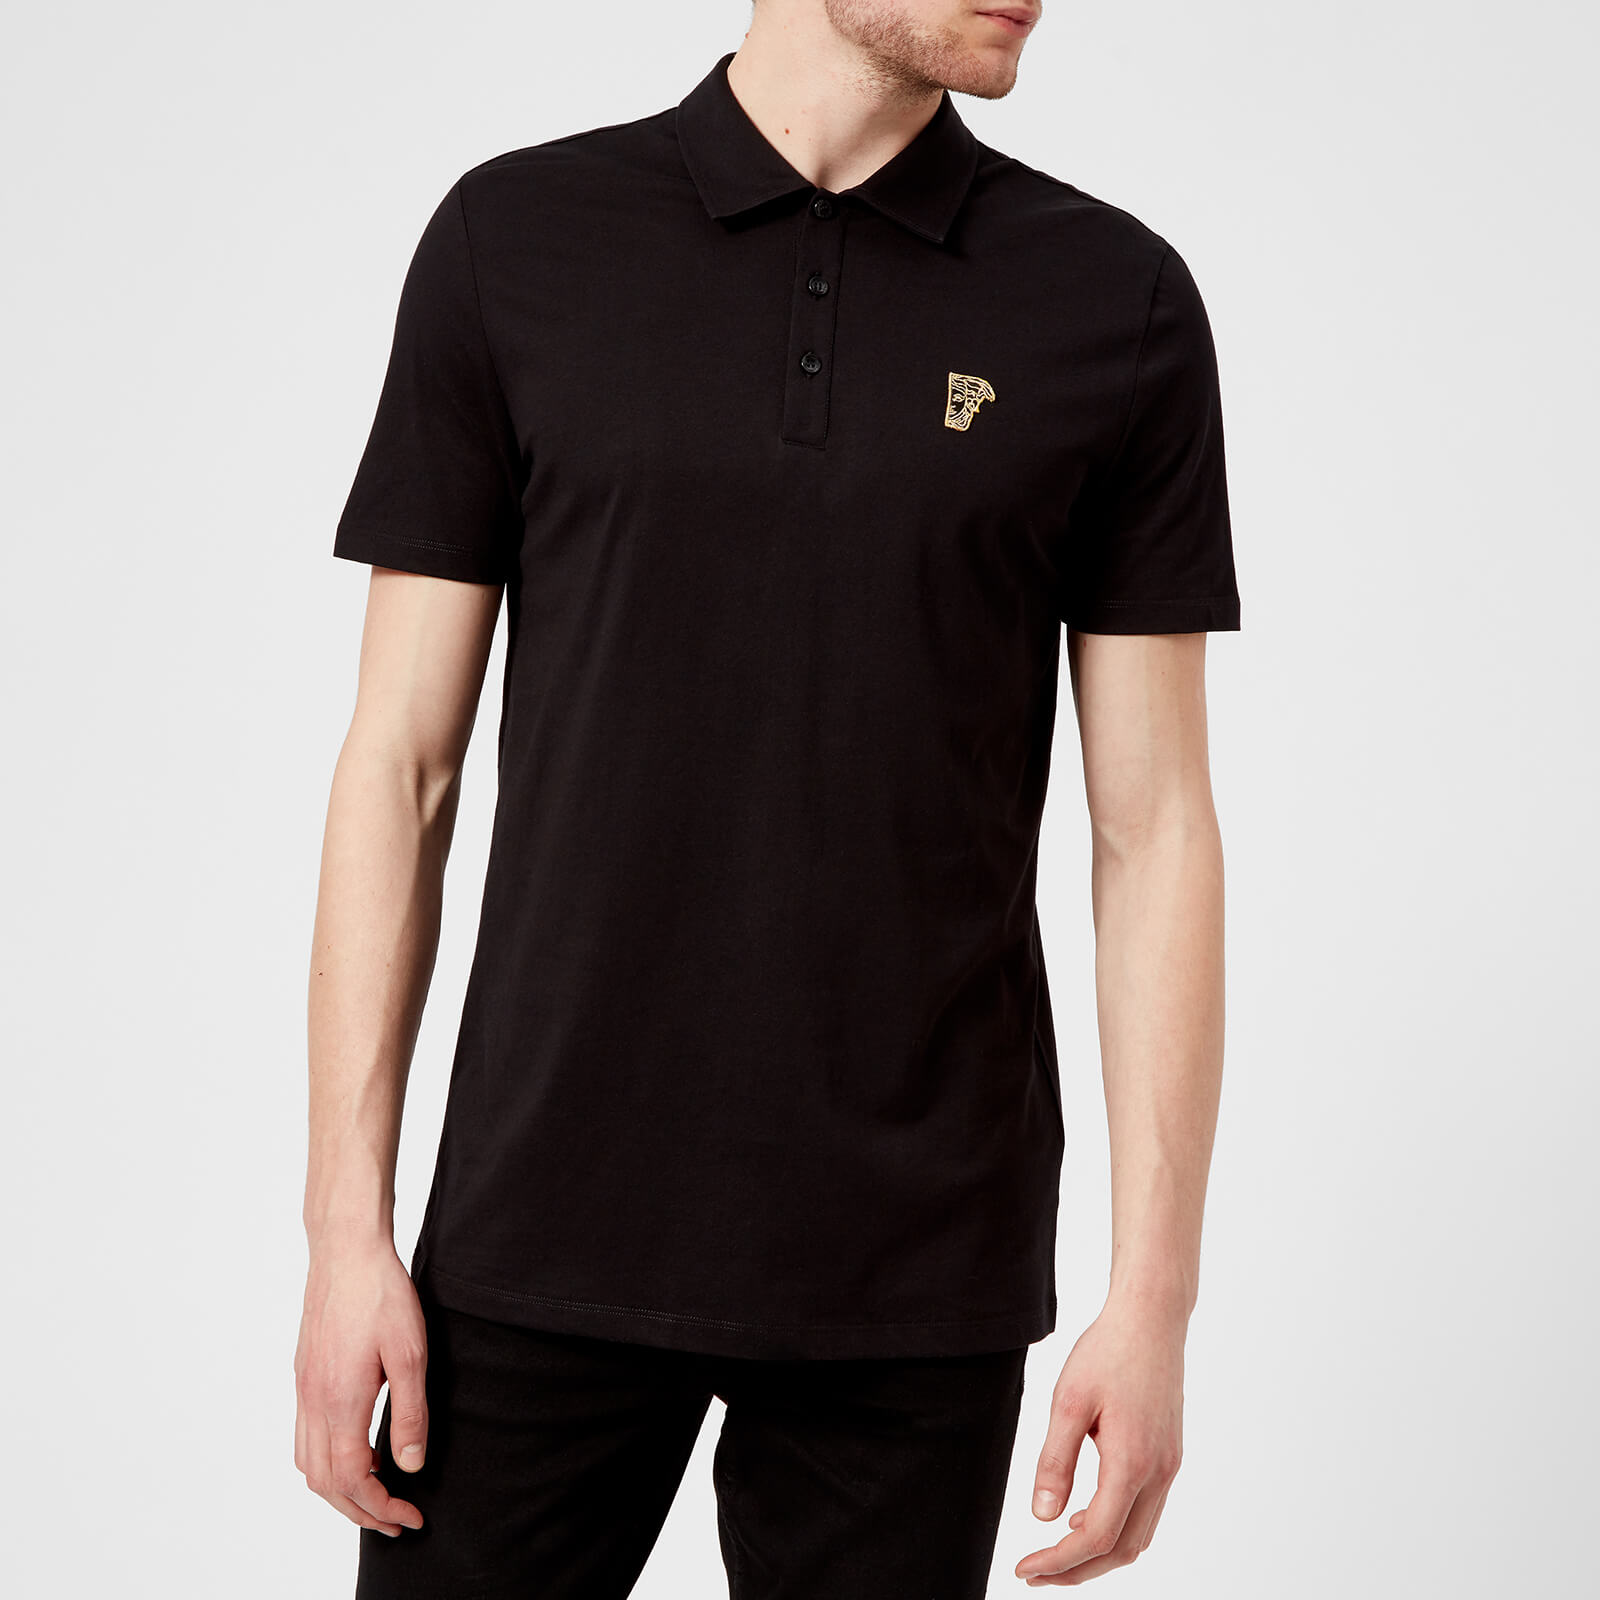 79893e8a Versace Collection Men's Basic Polo Shirt - Black - Free UK Delivery over  £50